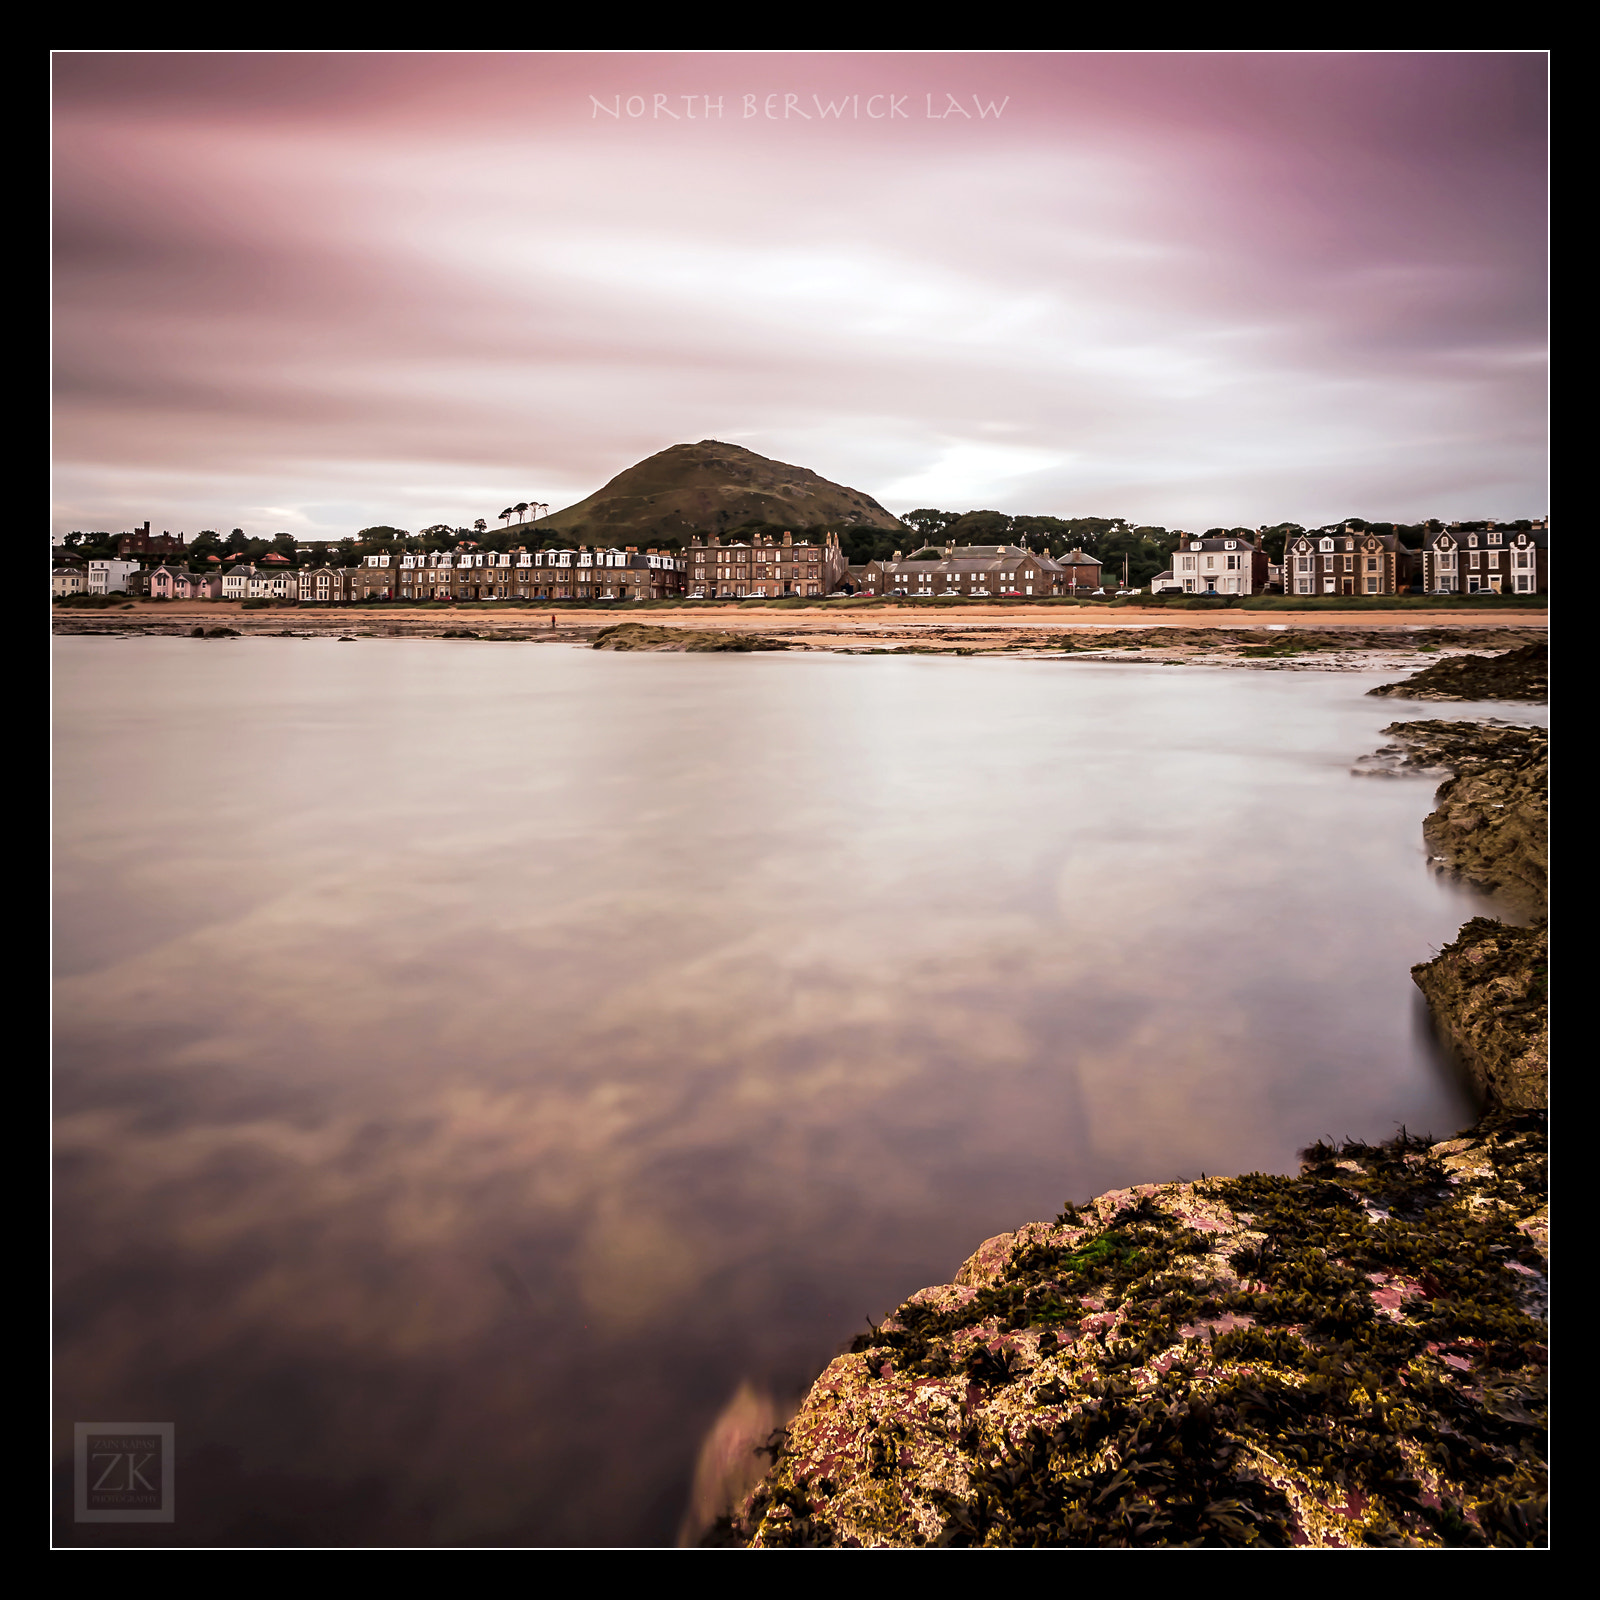 Photograph North Berwick Law by Zain Kapasi on 500px